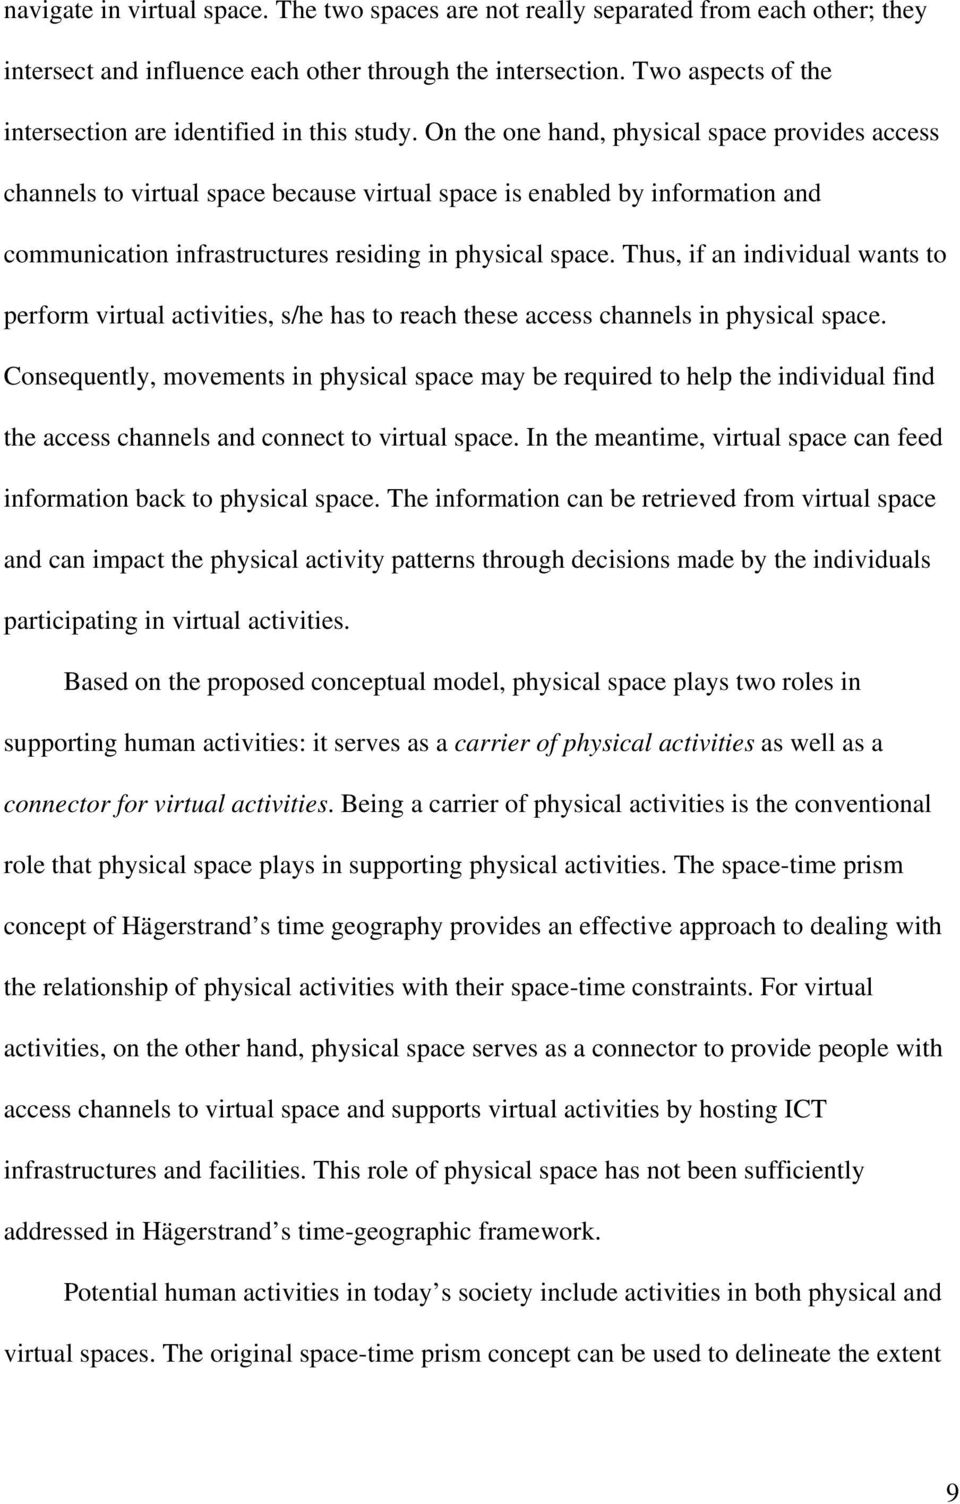 On the one hand, physical space provides access channels to virtual space because virtual space is enabled by information and communication infrastructures residing in physical space.